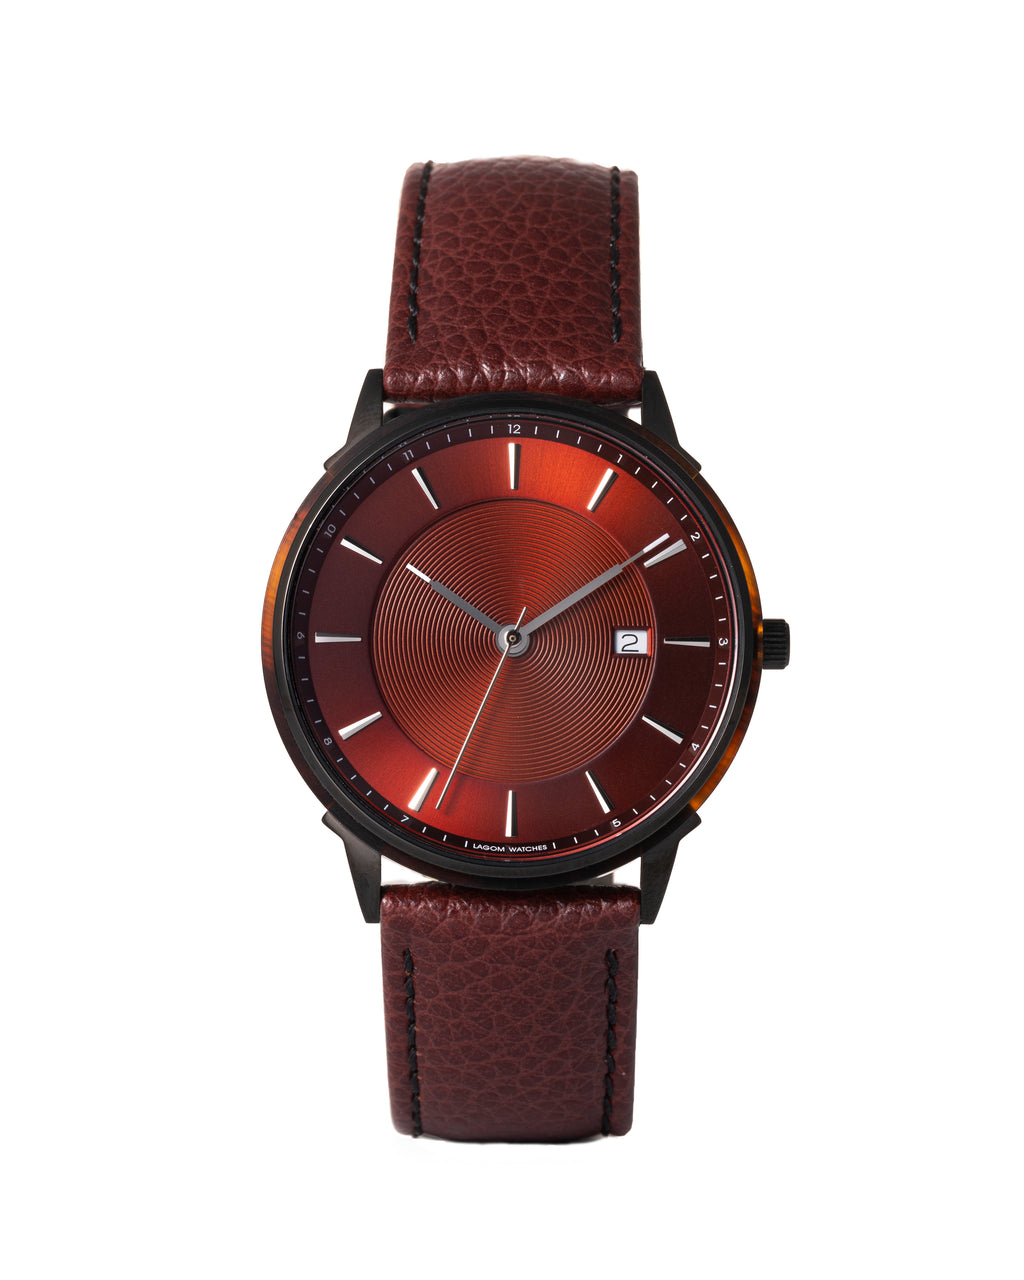 LW105-Black.MahoganyRed.BrownLizard